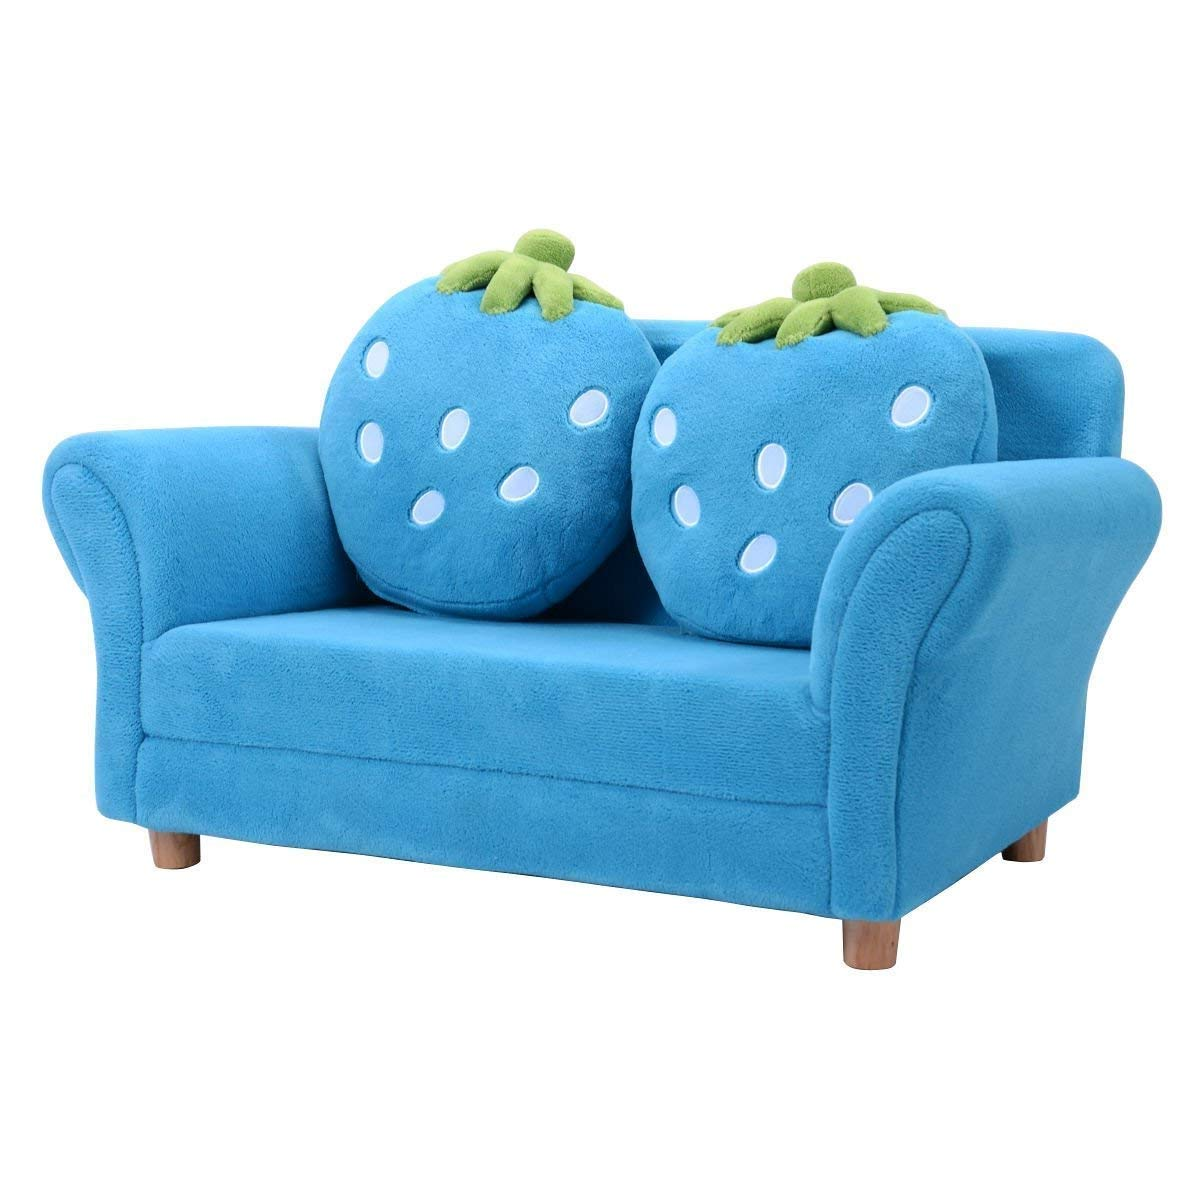 HONEY JOY Children Sofa, Kids Couch Armrest Chair, Upholstered Living Room Furniture, Lounge Bed with Two Strawberry Pillows (Blue)